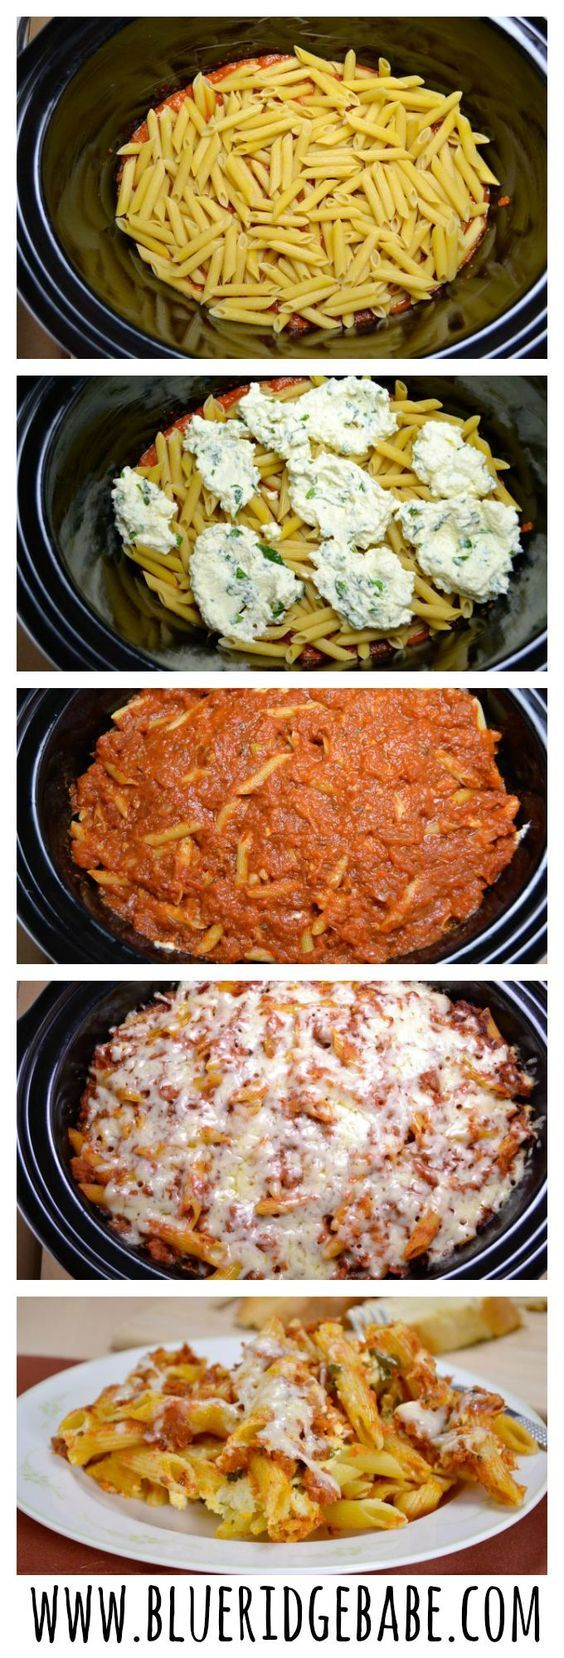 easy crockpot baked ziti - pinned over 50k times. Super easy and delicious! I used my regular pasta sauce. Using all parmesan cheese instead of asiago would be fine.: